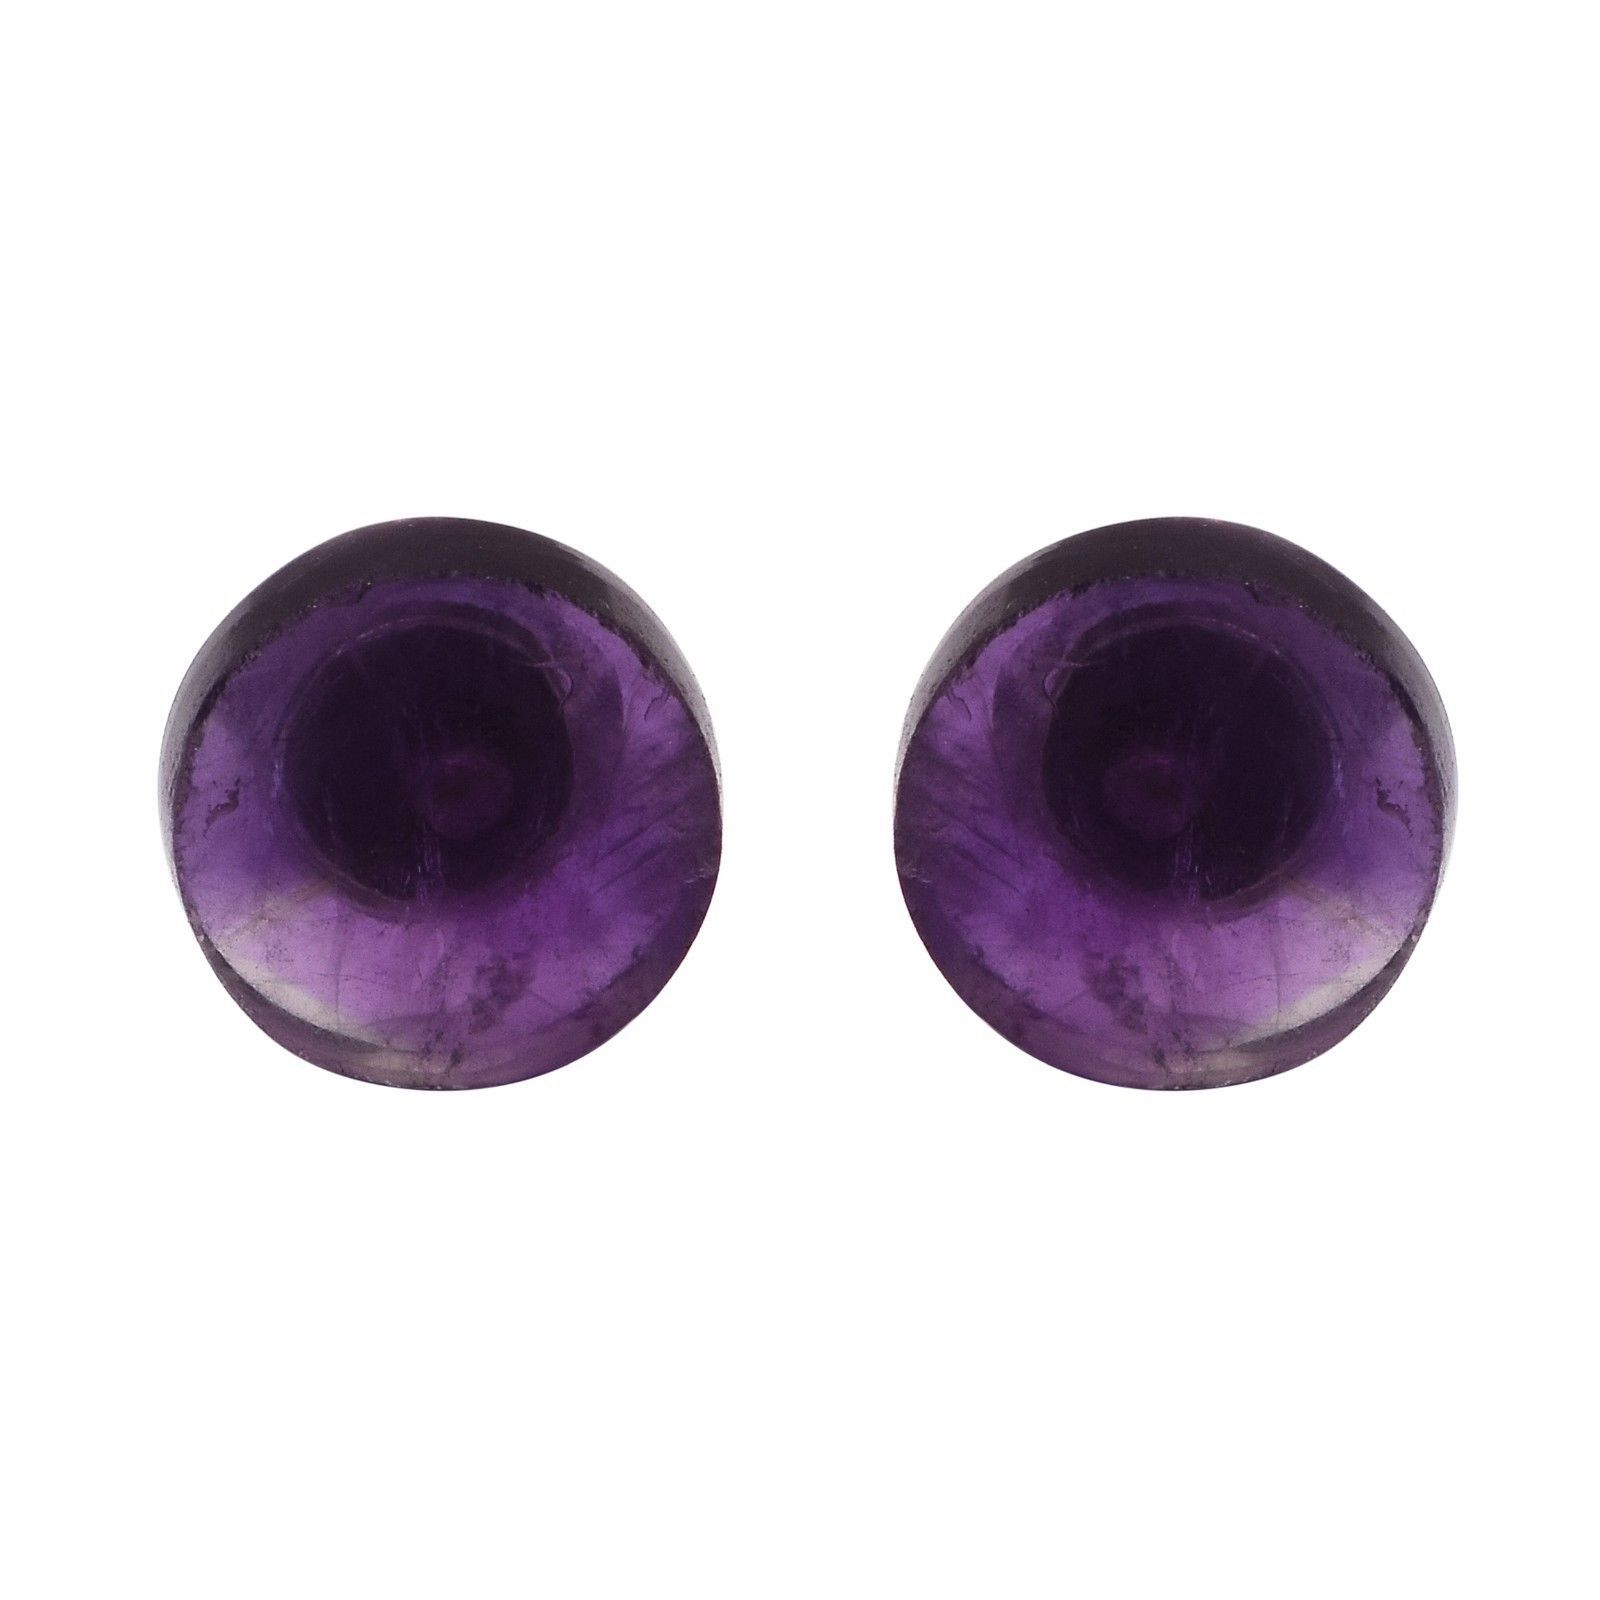 Three Pair Combo Stud Earring Set For Women 925 Sterling Silver Amethyst & Onyx